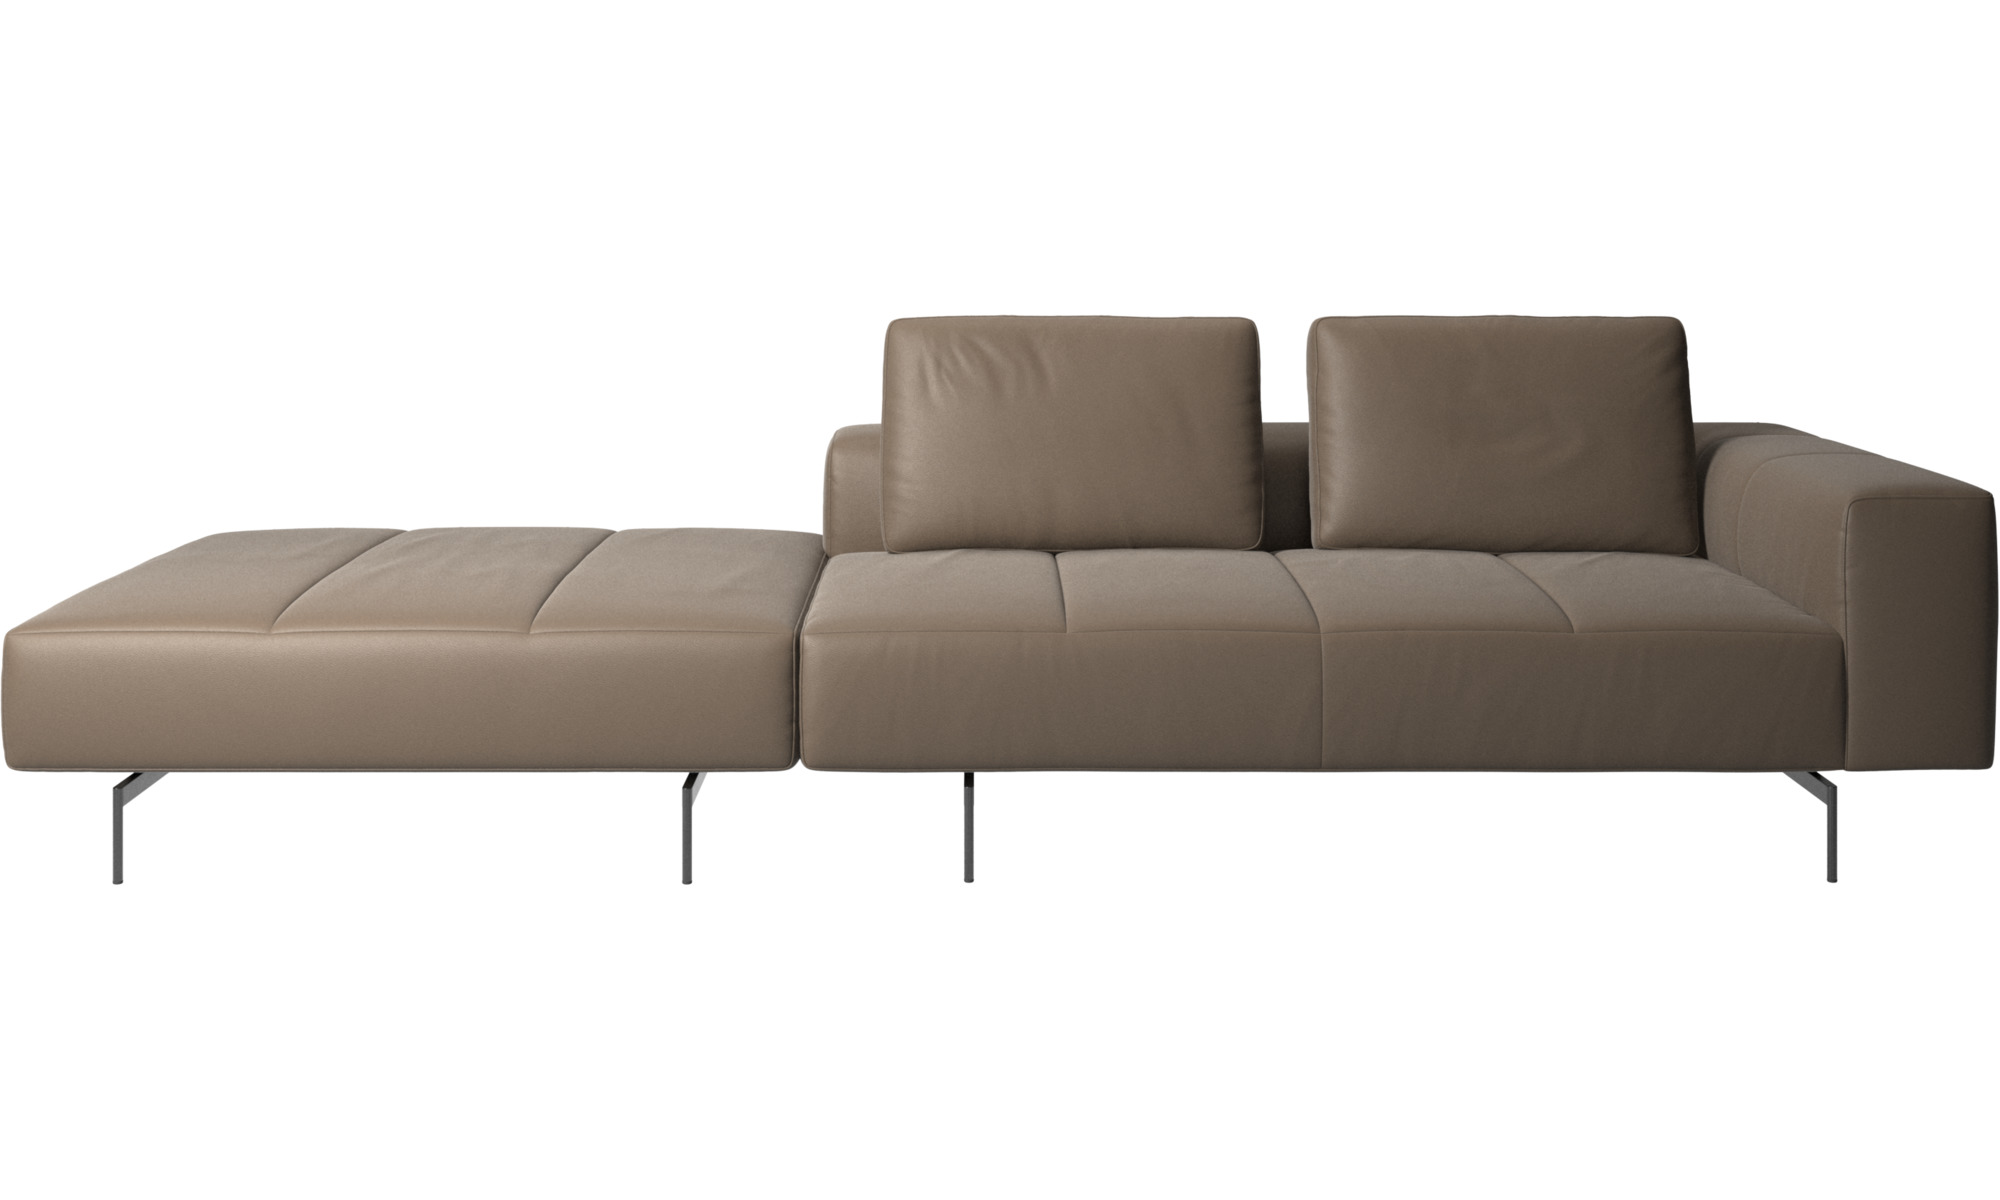 amsterdam sofa with footstool on left side